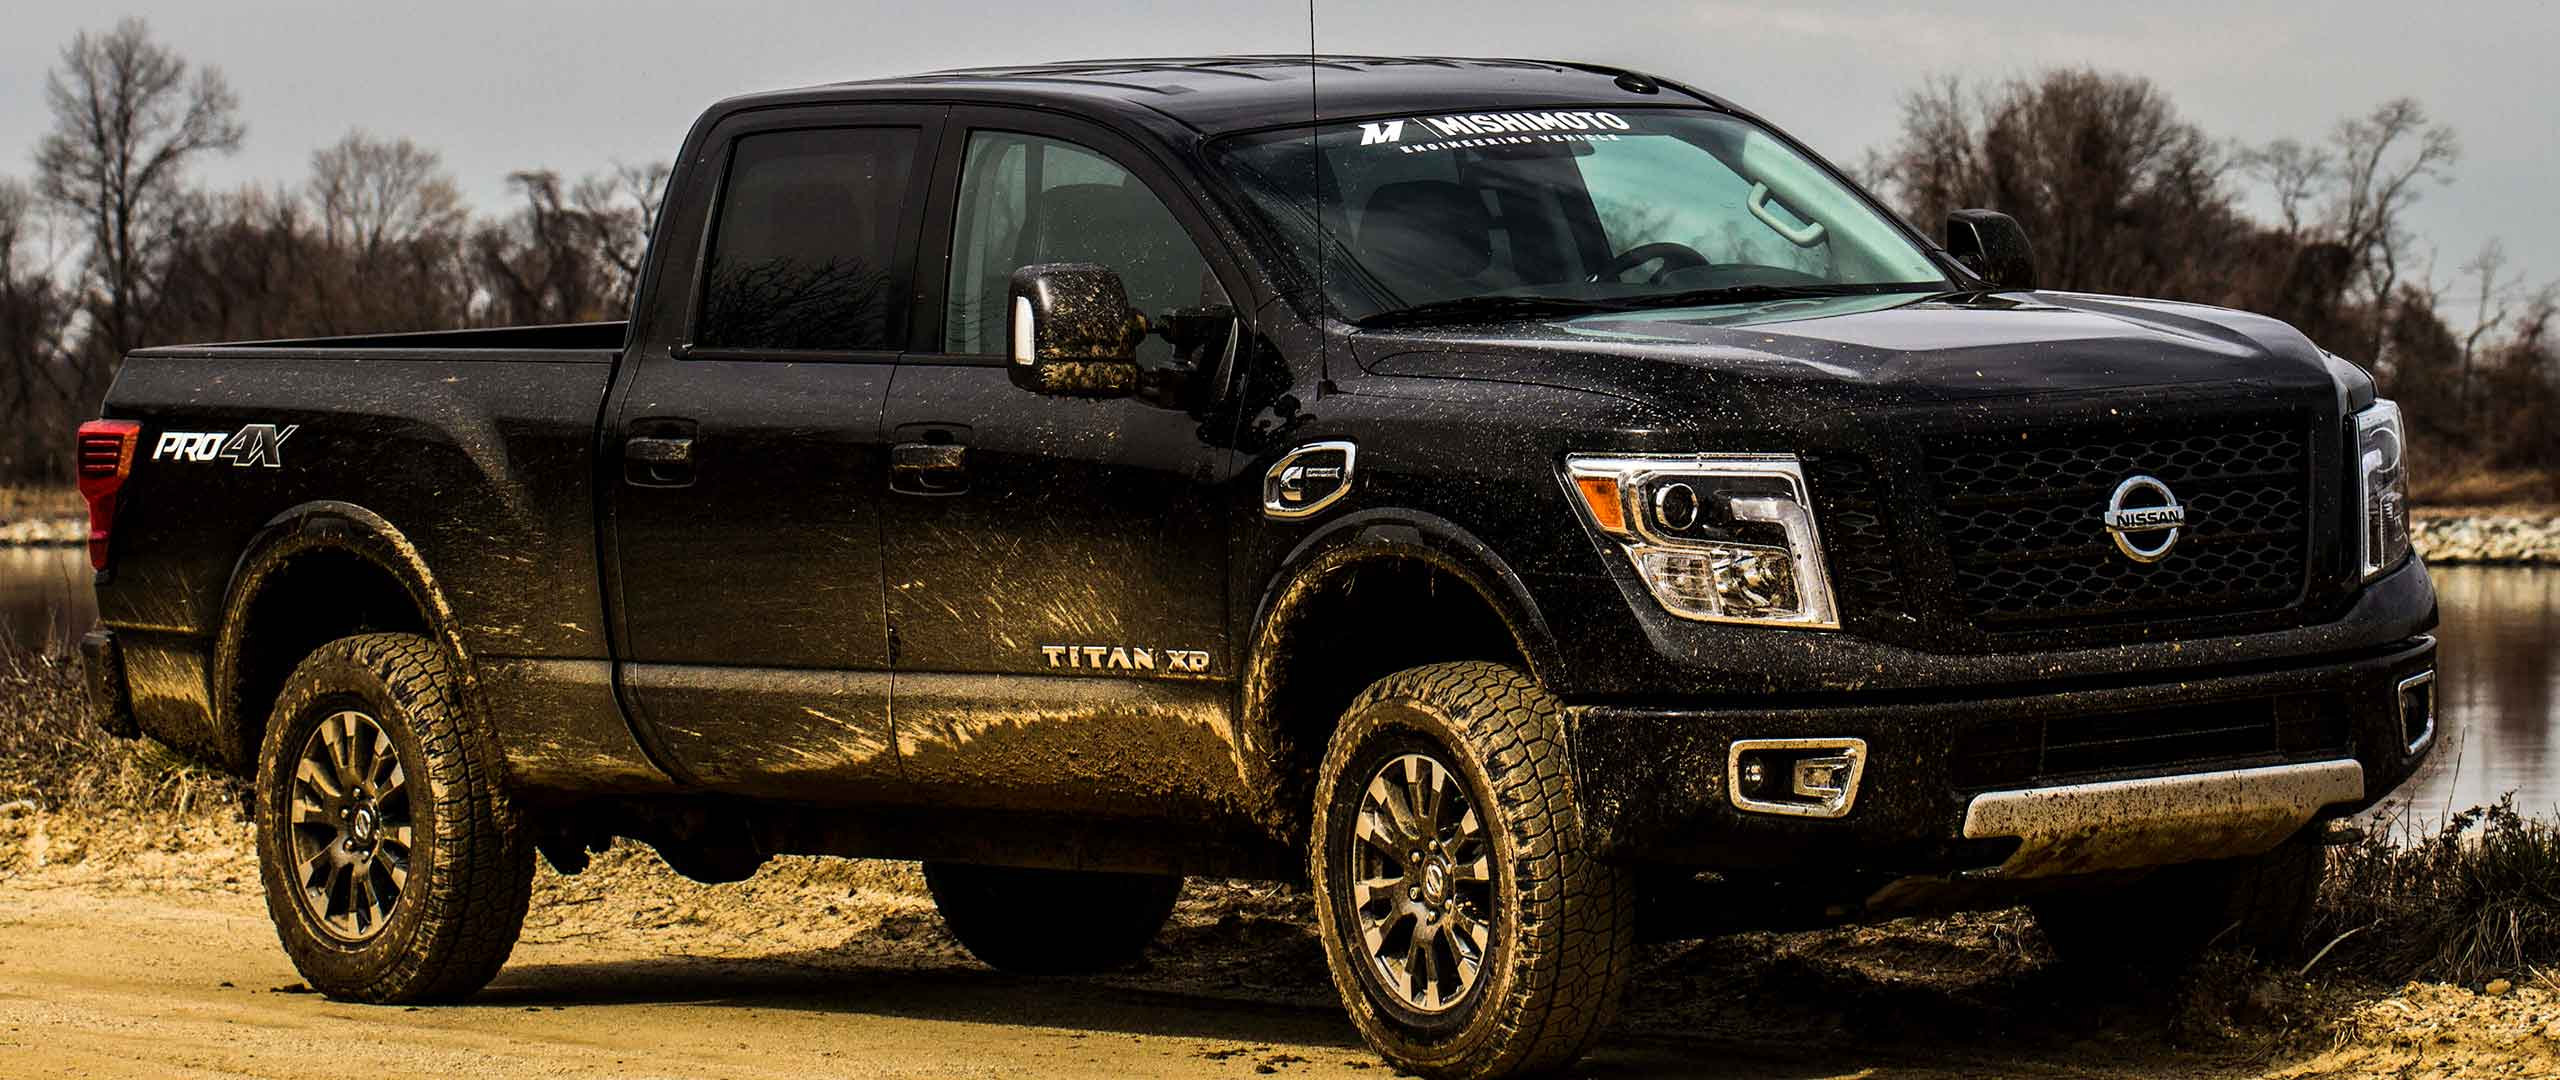 Nissan titan xd performance parts